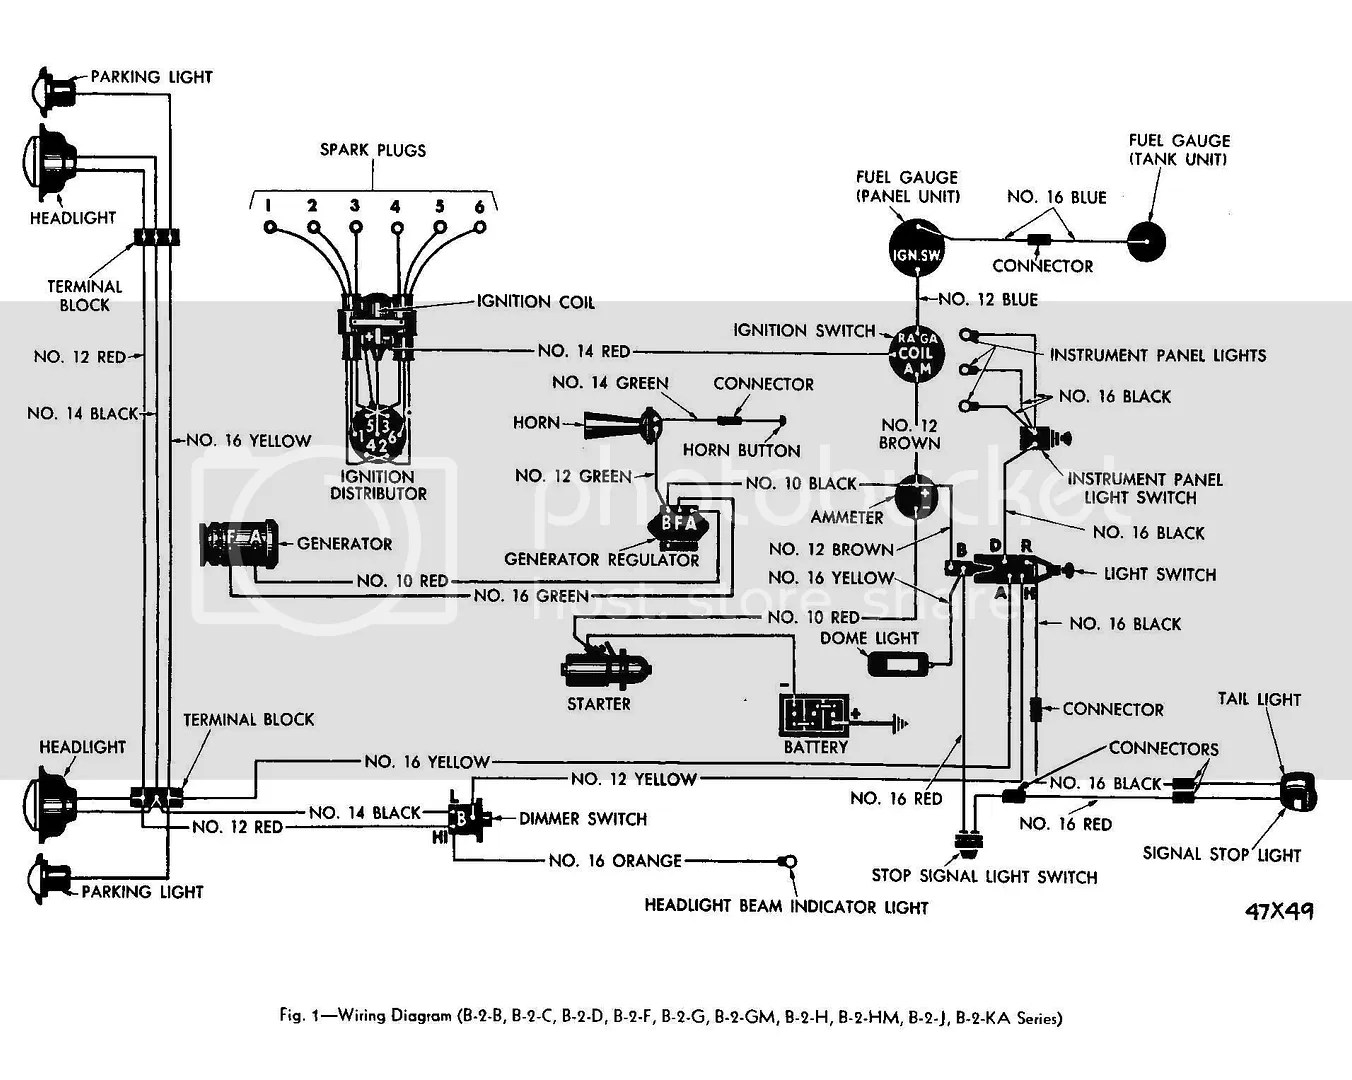 Diagram 1950 Plymouth Wiring Diagram Full Version Hd Quality Wiring Diagram Rewiringmen2a Videomind It